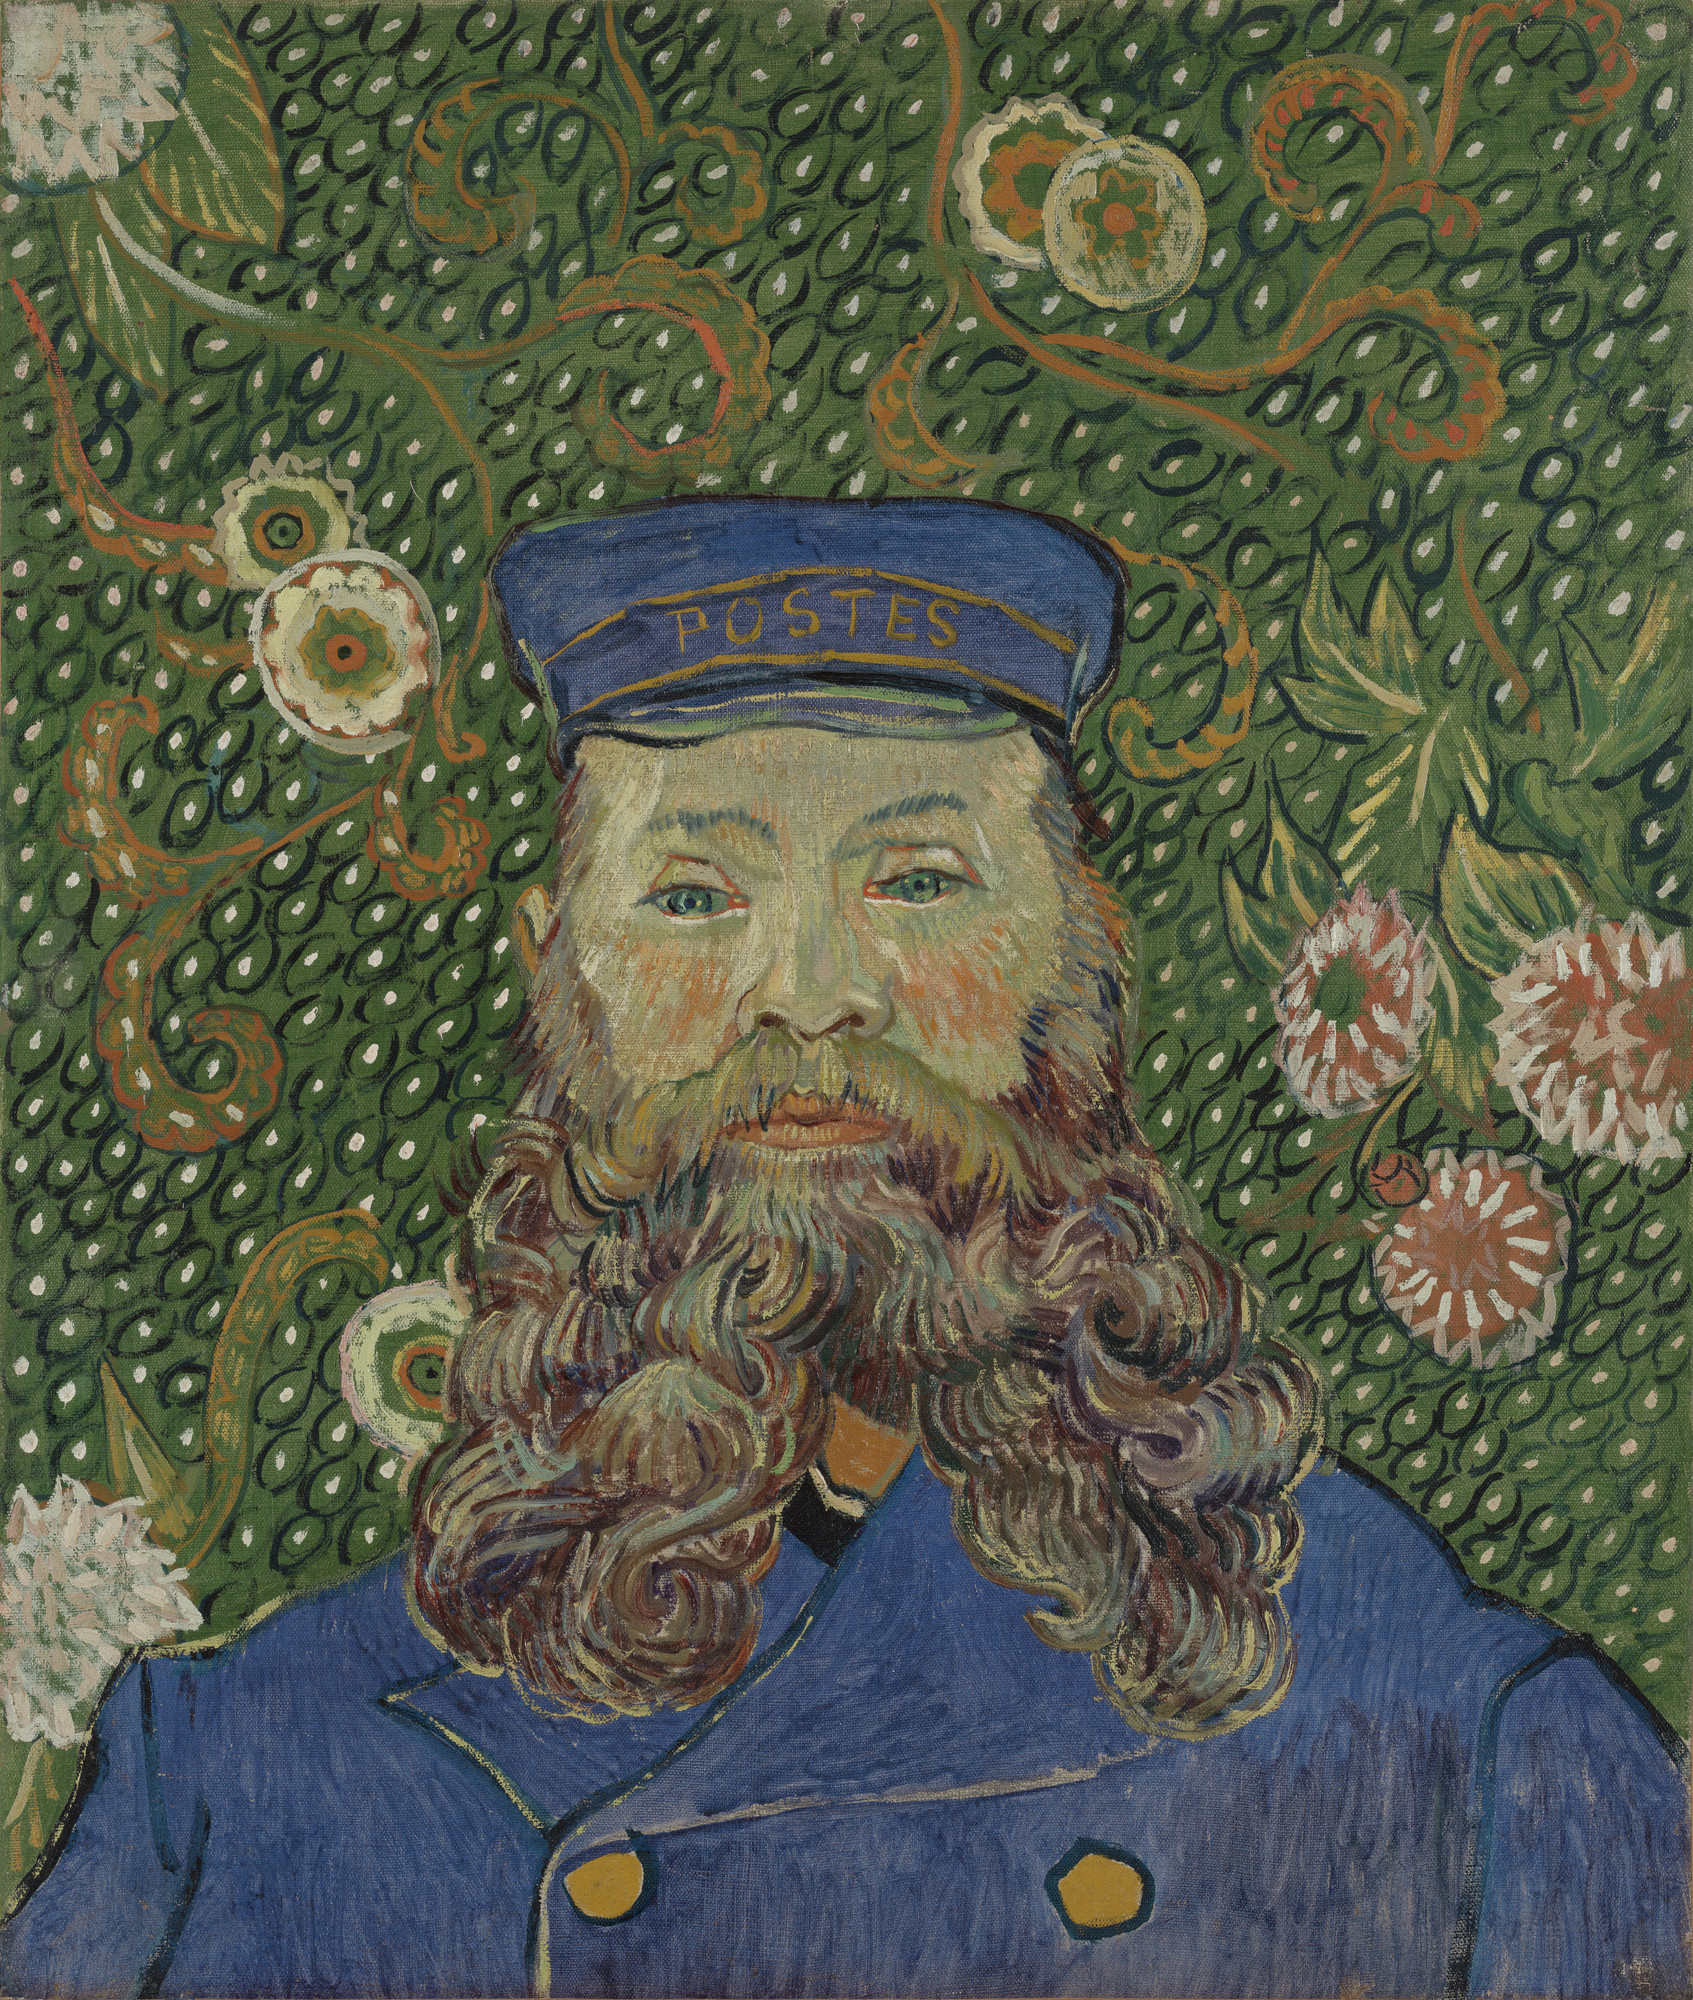 Vincent van Gogh. Portrait of Joseph Roulin. Arles, early 1889. Oil on canvas, 25 3⁄8 × 21 3/4″ (64.4 × 55.2 cm). Gift of Mr. and Mrs. William A. M. Burden, Mr. and Mrs. Paul Rosenberg, Nelson A. Rockefeller, Mr. and Mrs. Armand P. Bartos, The Sidney and Harriet Janis Collection, Mr. and Mrs. Werner E. Josten, and Loula D. Lasker Bequest (all by exchange). Photo: Thomas Griesel